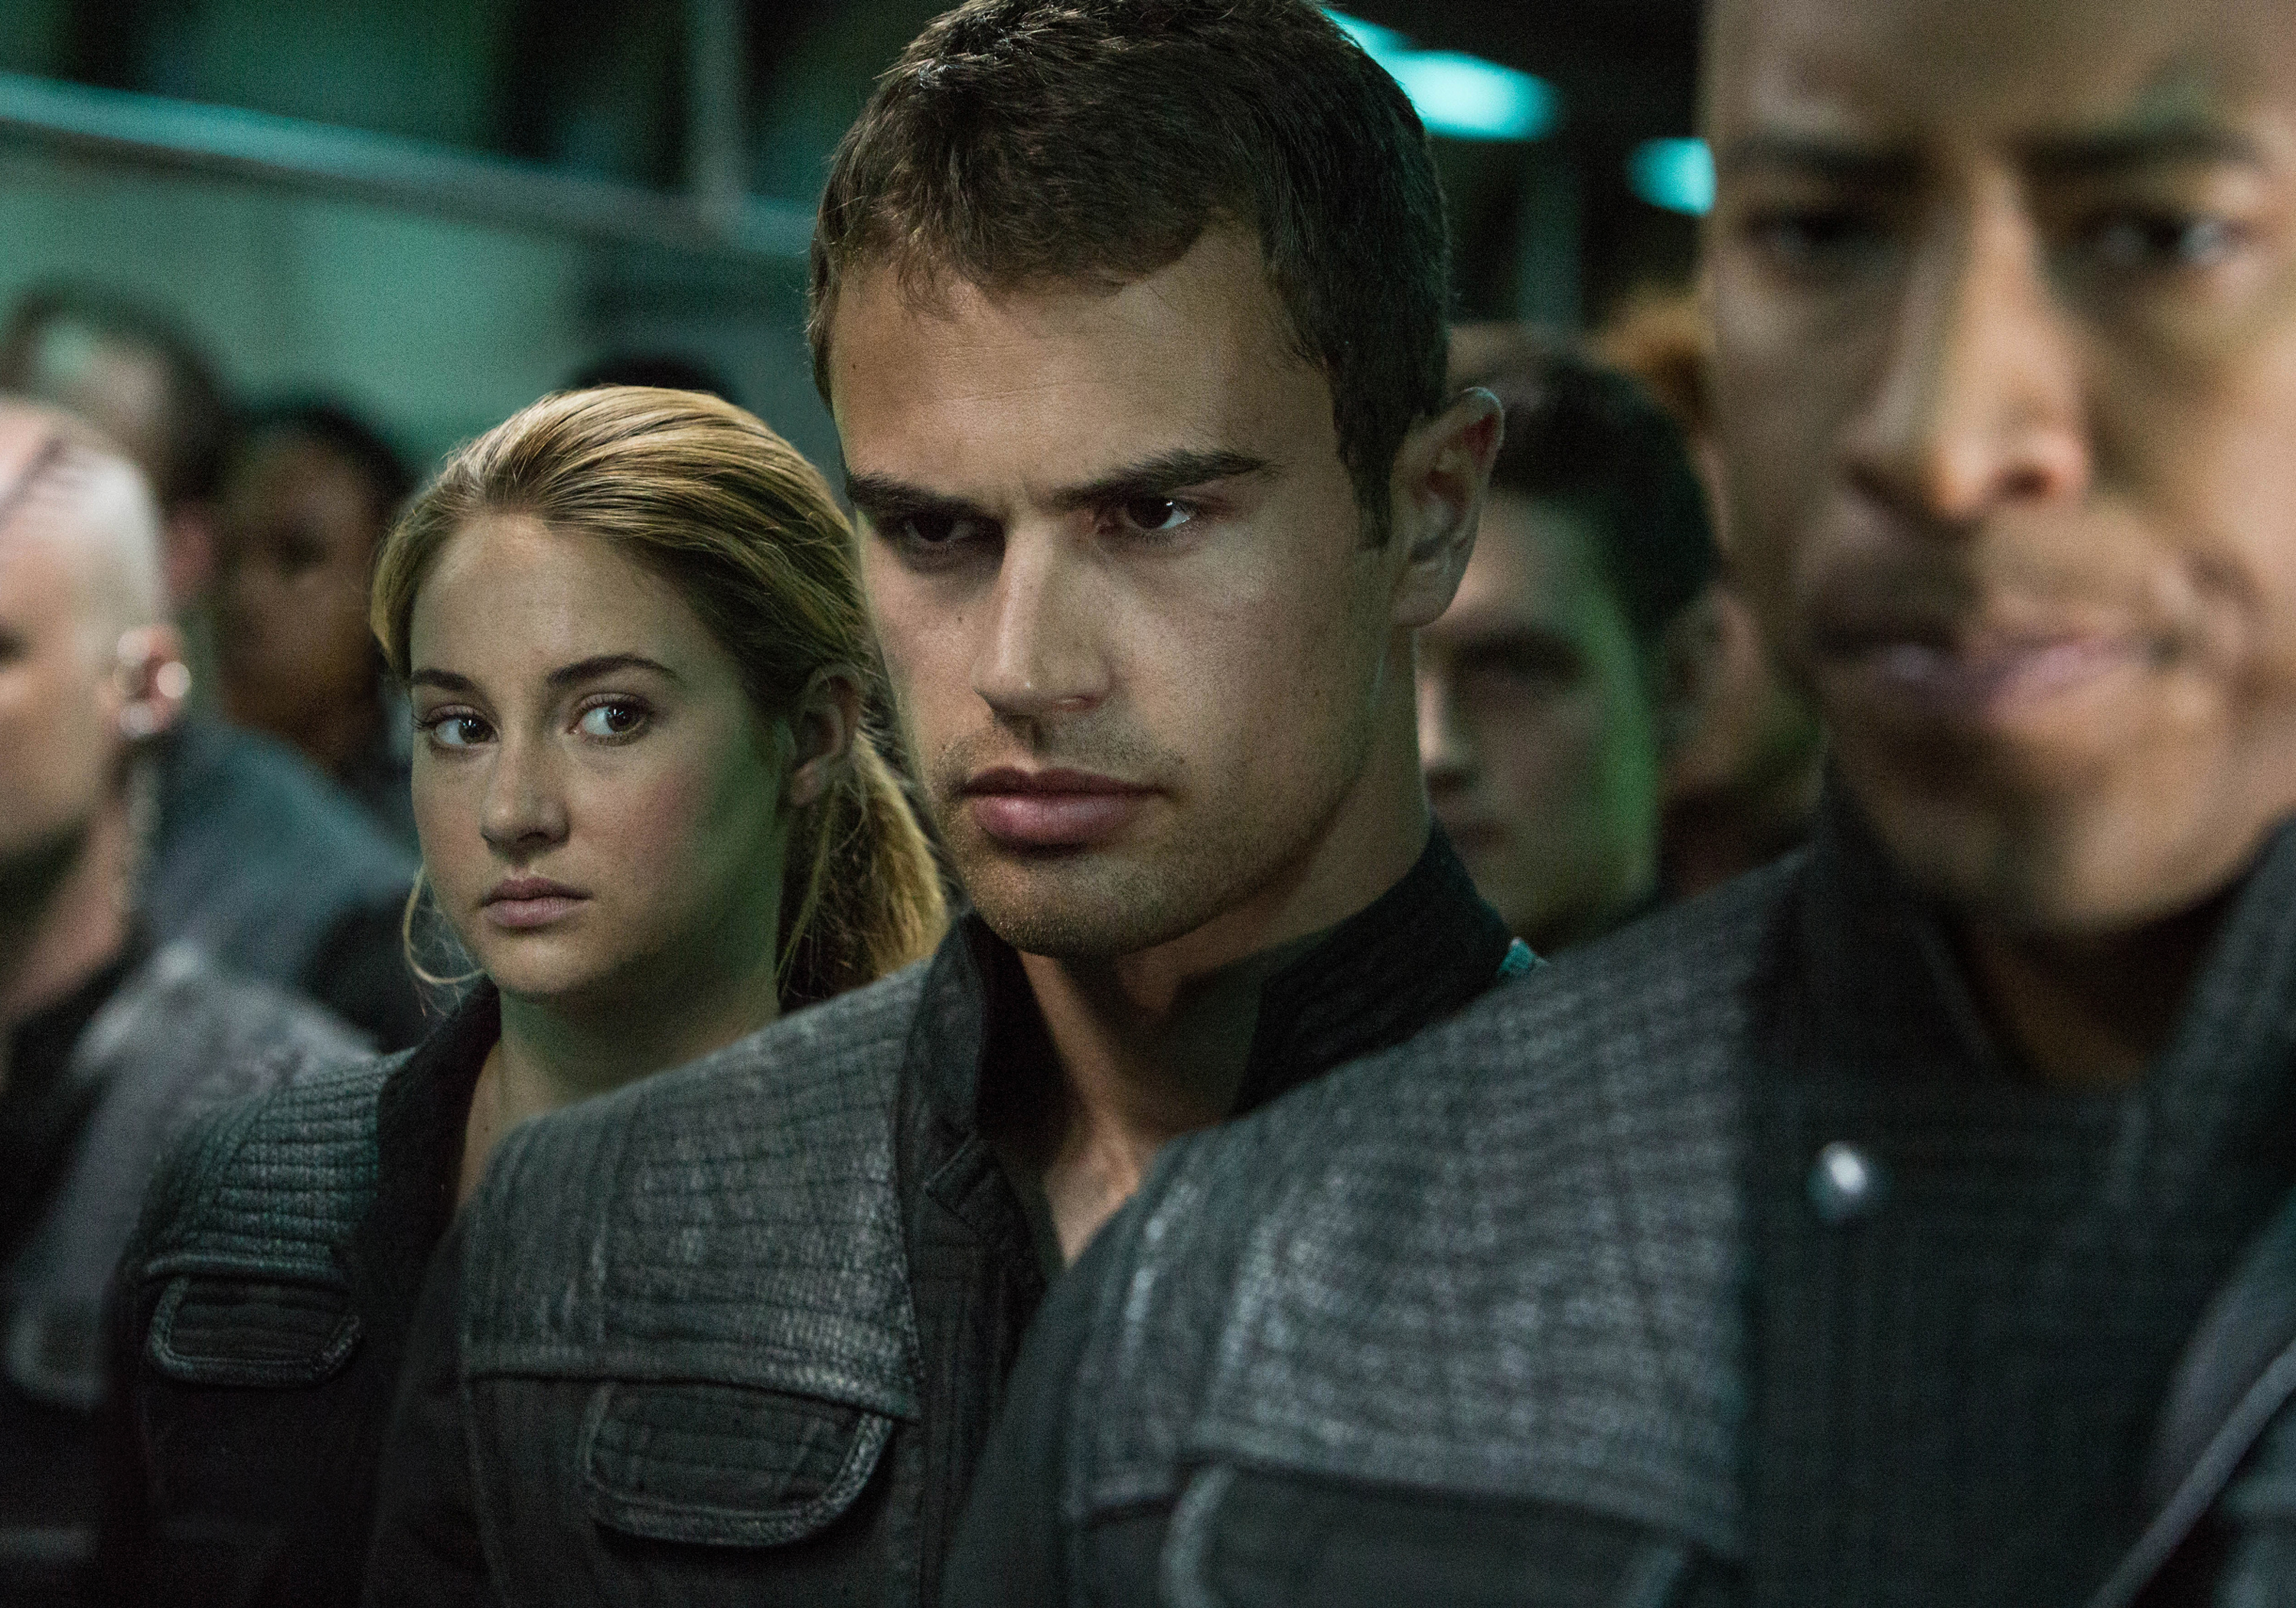 New look at shailene woodley and theo james in divergent new image of shailene woodley and theo james in divergent m4hsunfo